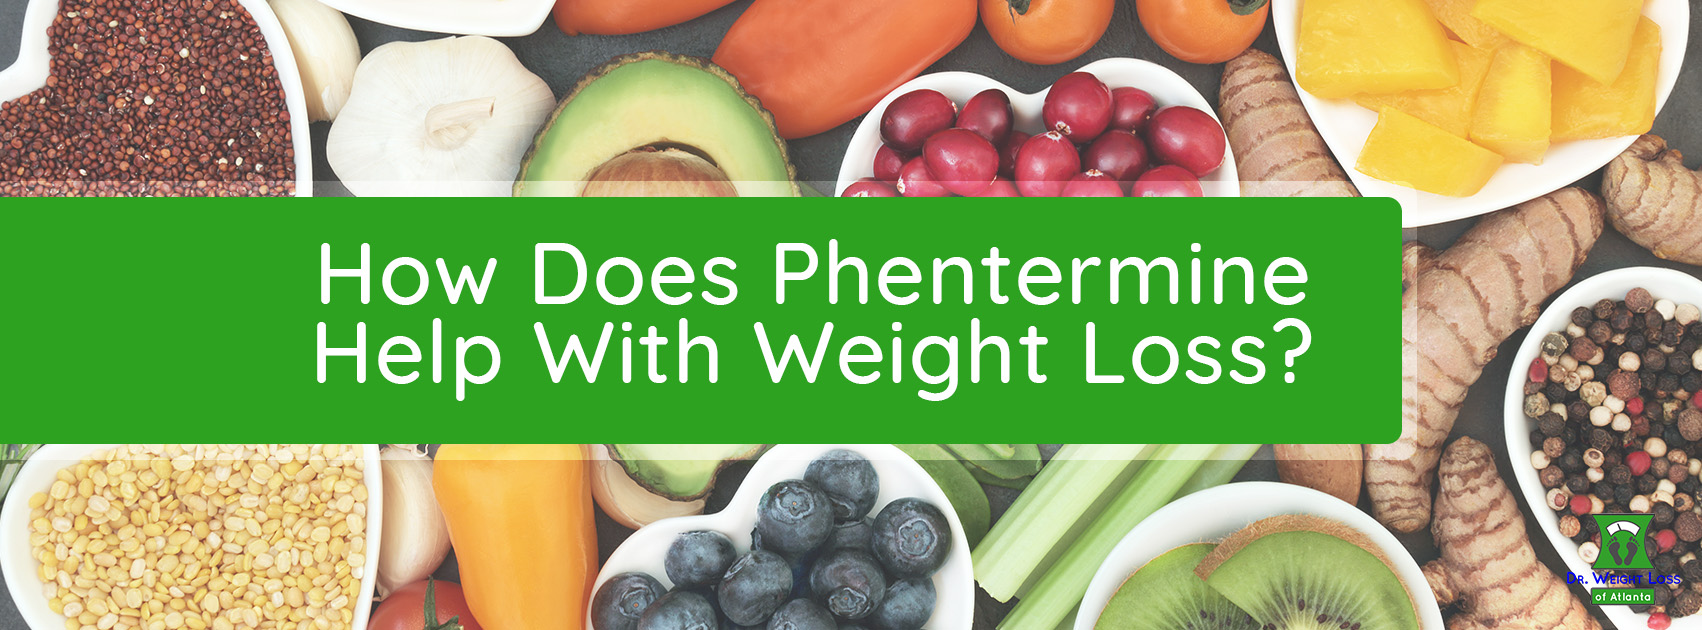 How Does Phentermine Help With Weight Loss? | Dr. Weight Loss